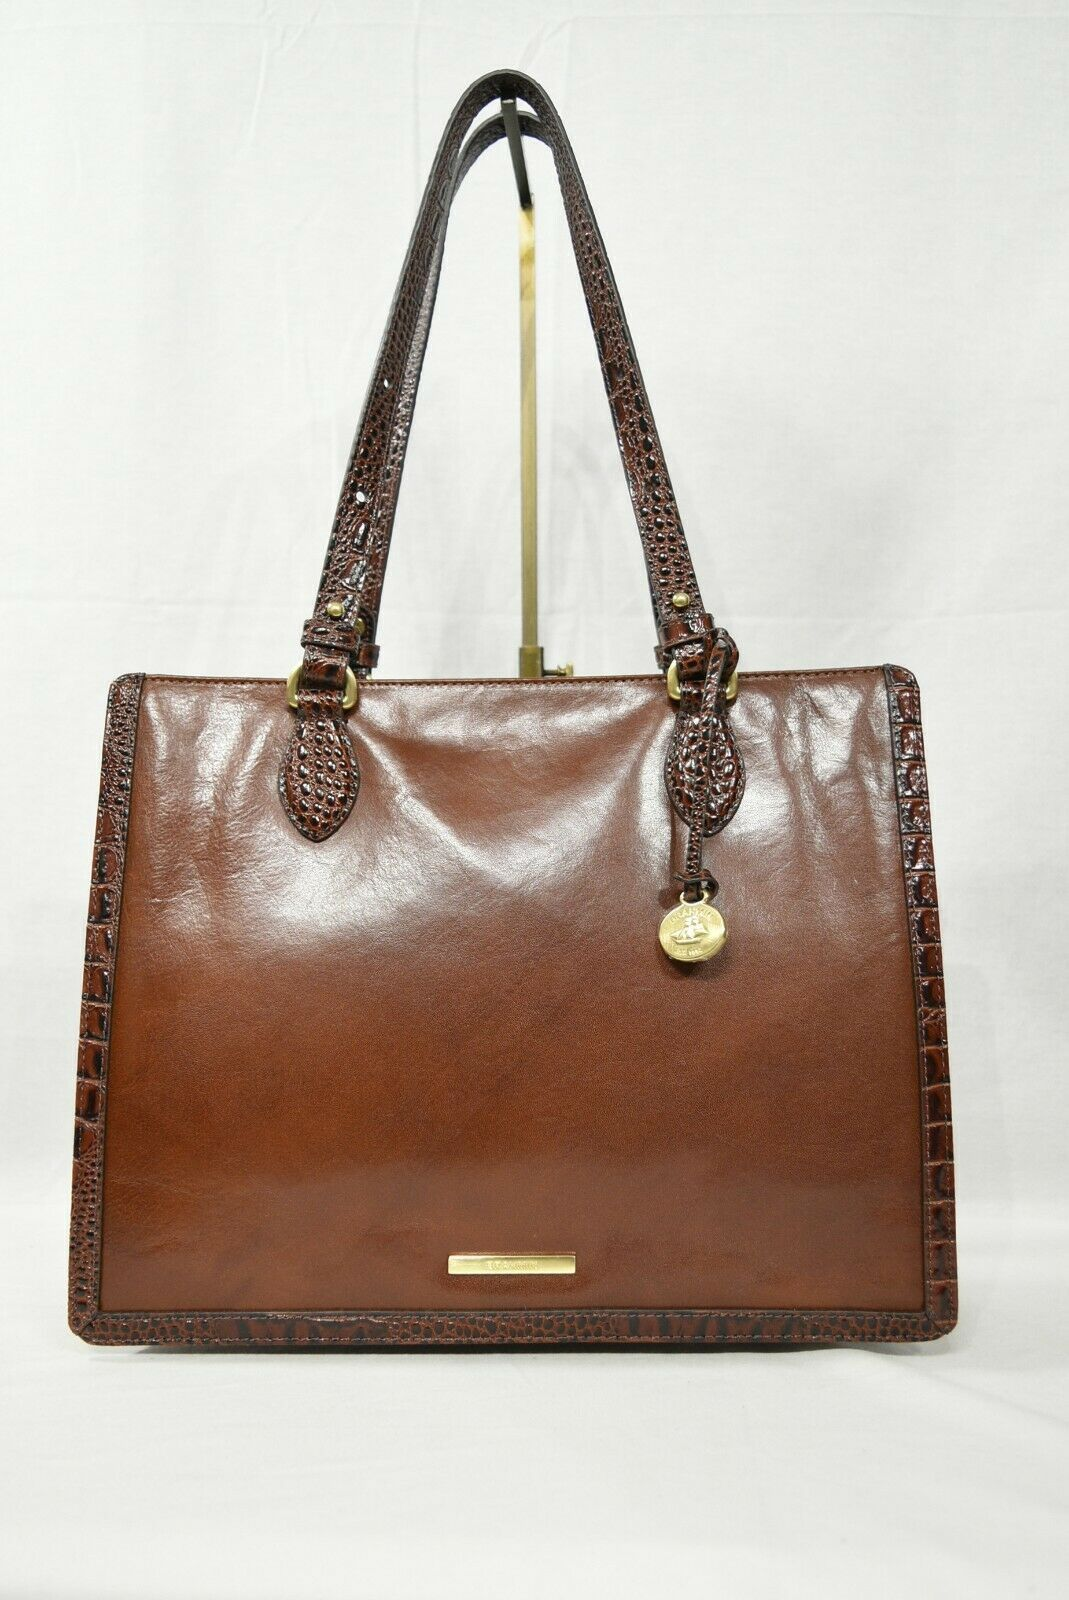 NWT Brahmin Medium Camille Leather Tote/Shoulder Bag in Cognac Quincy image 2